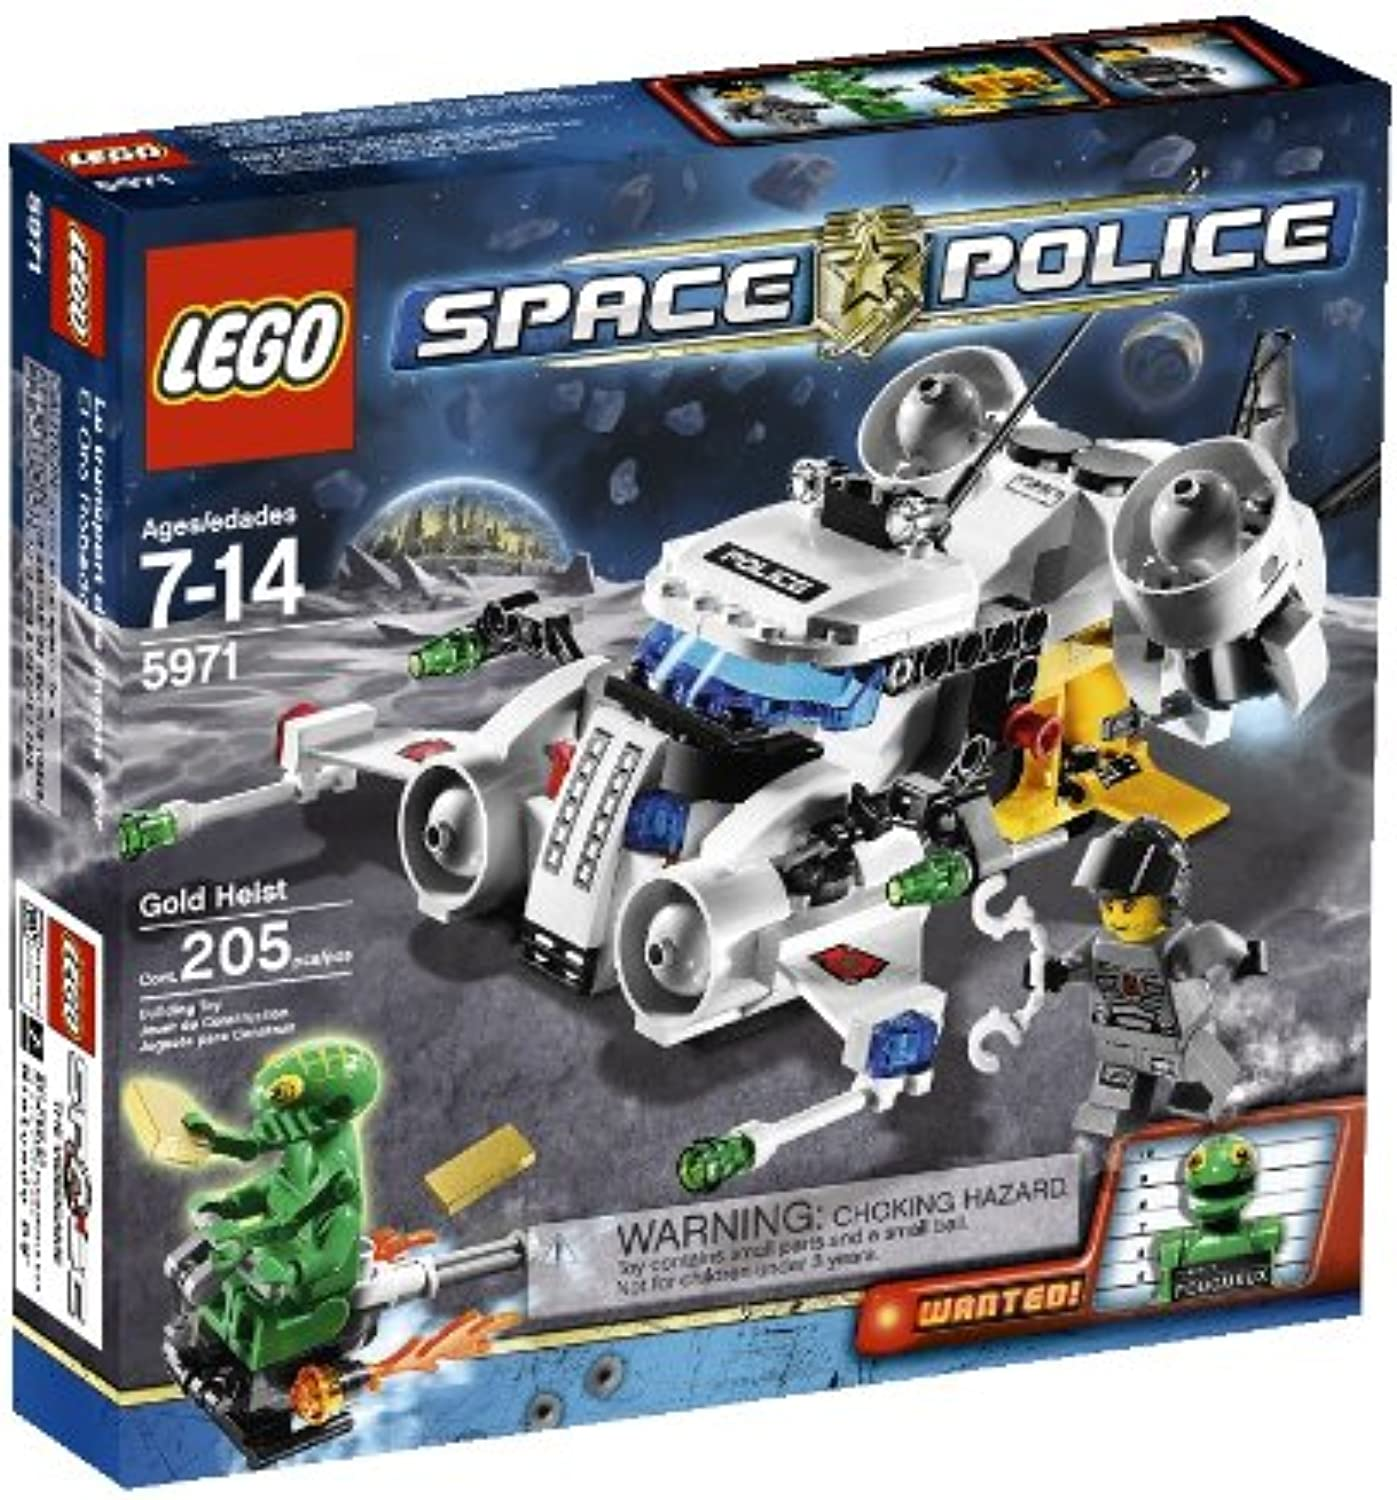 LEGO Space Police Gold Heist (5971) by LEGO